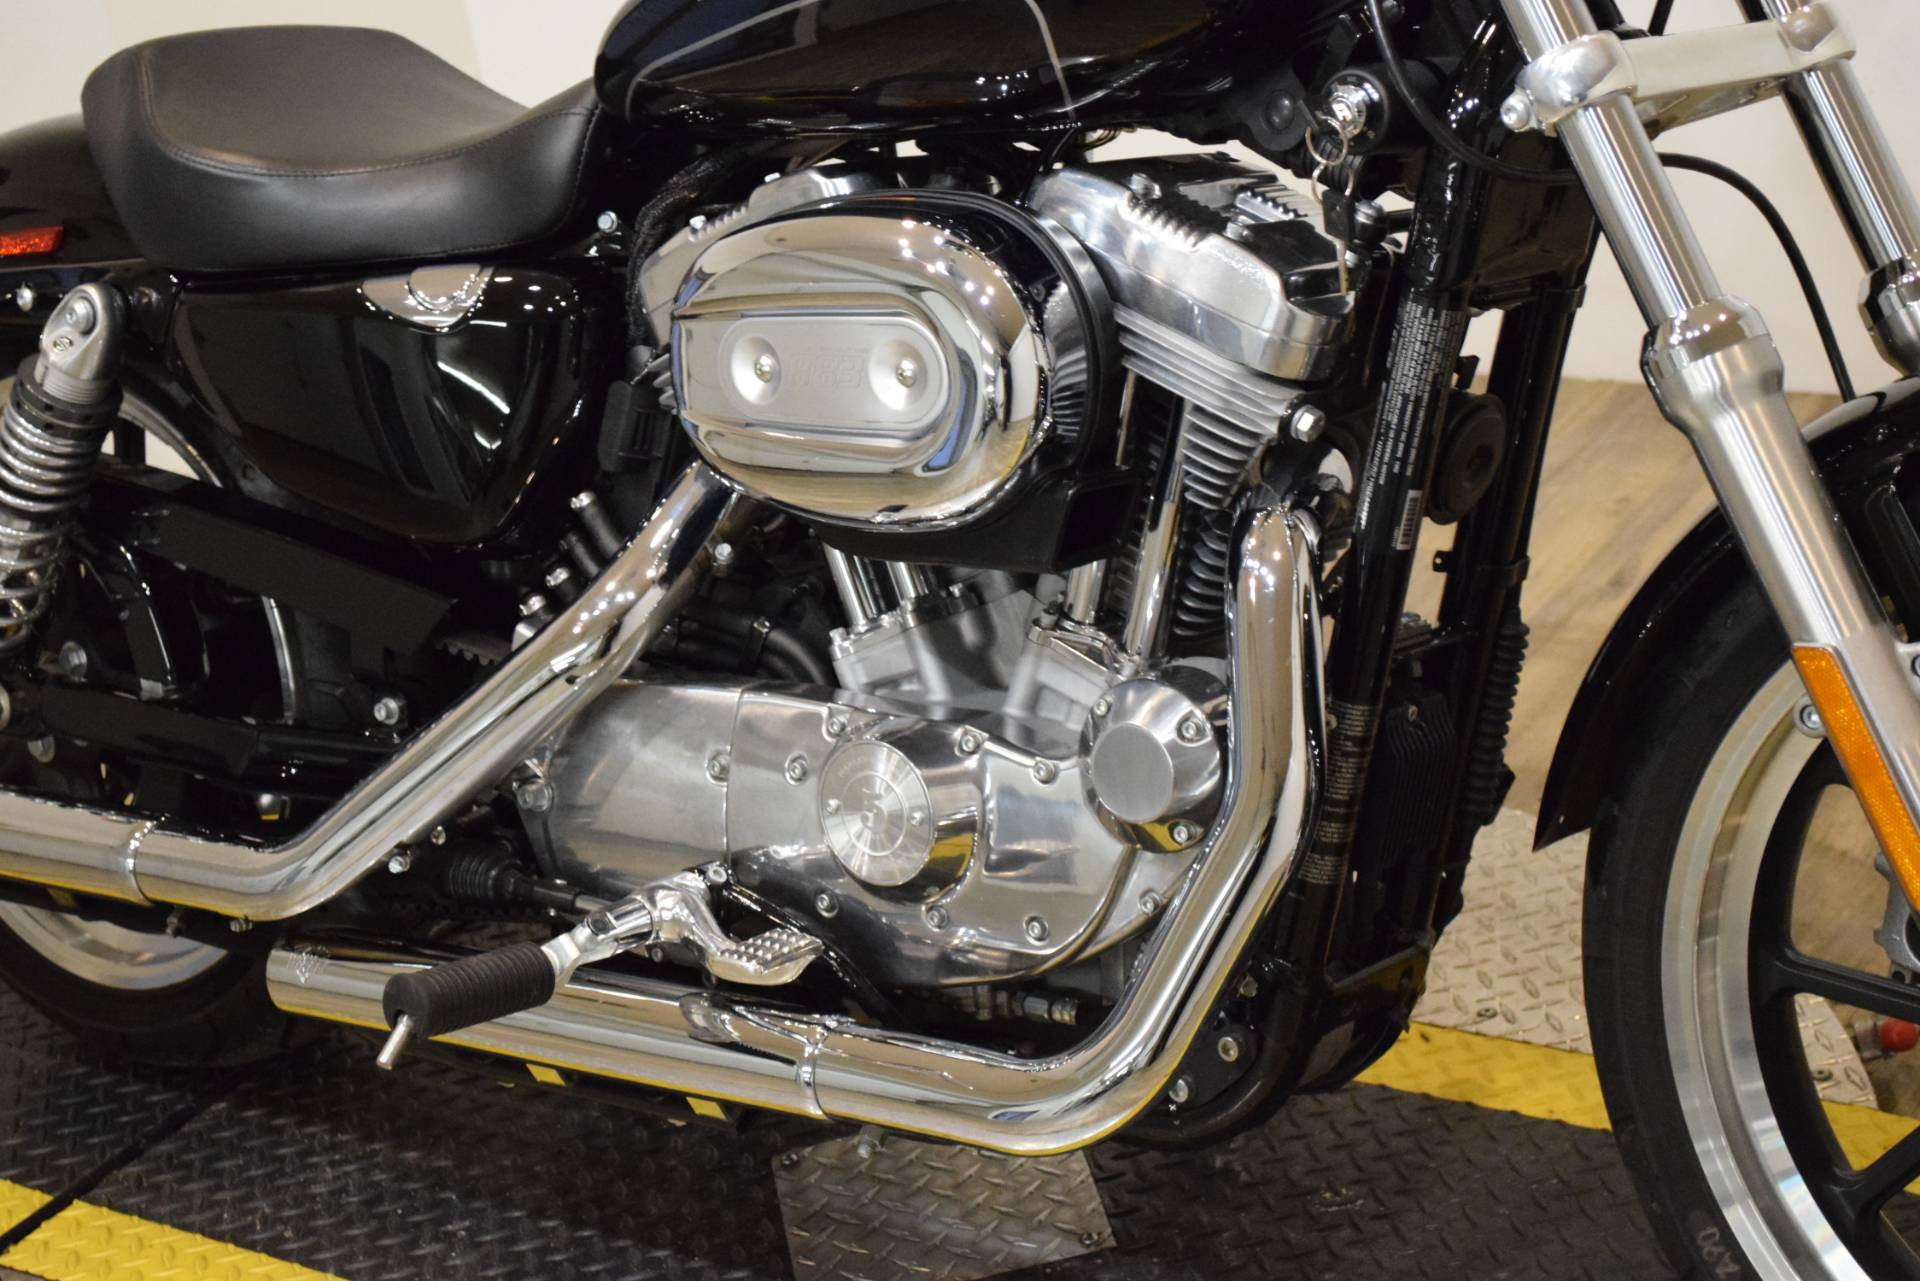 2016 Harley-Davidson XL883L in Wauconda, Illinois - Photo 4